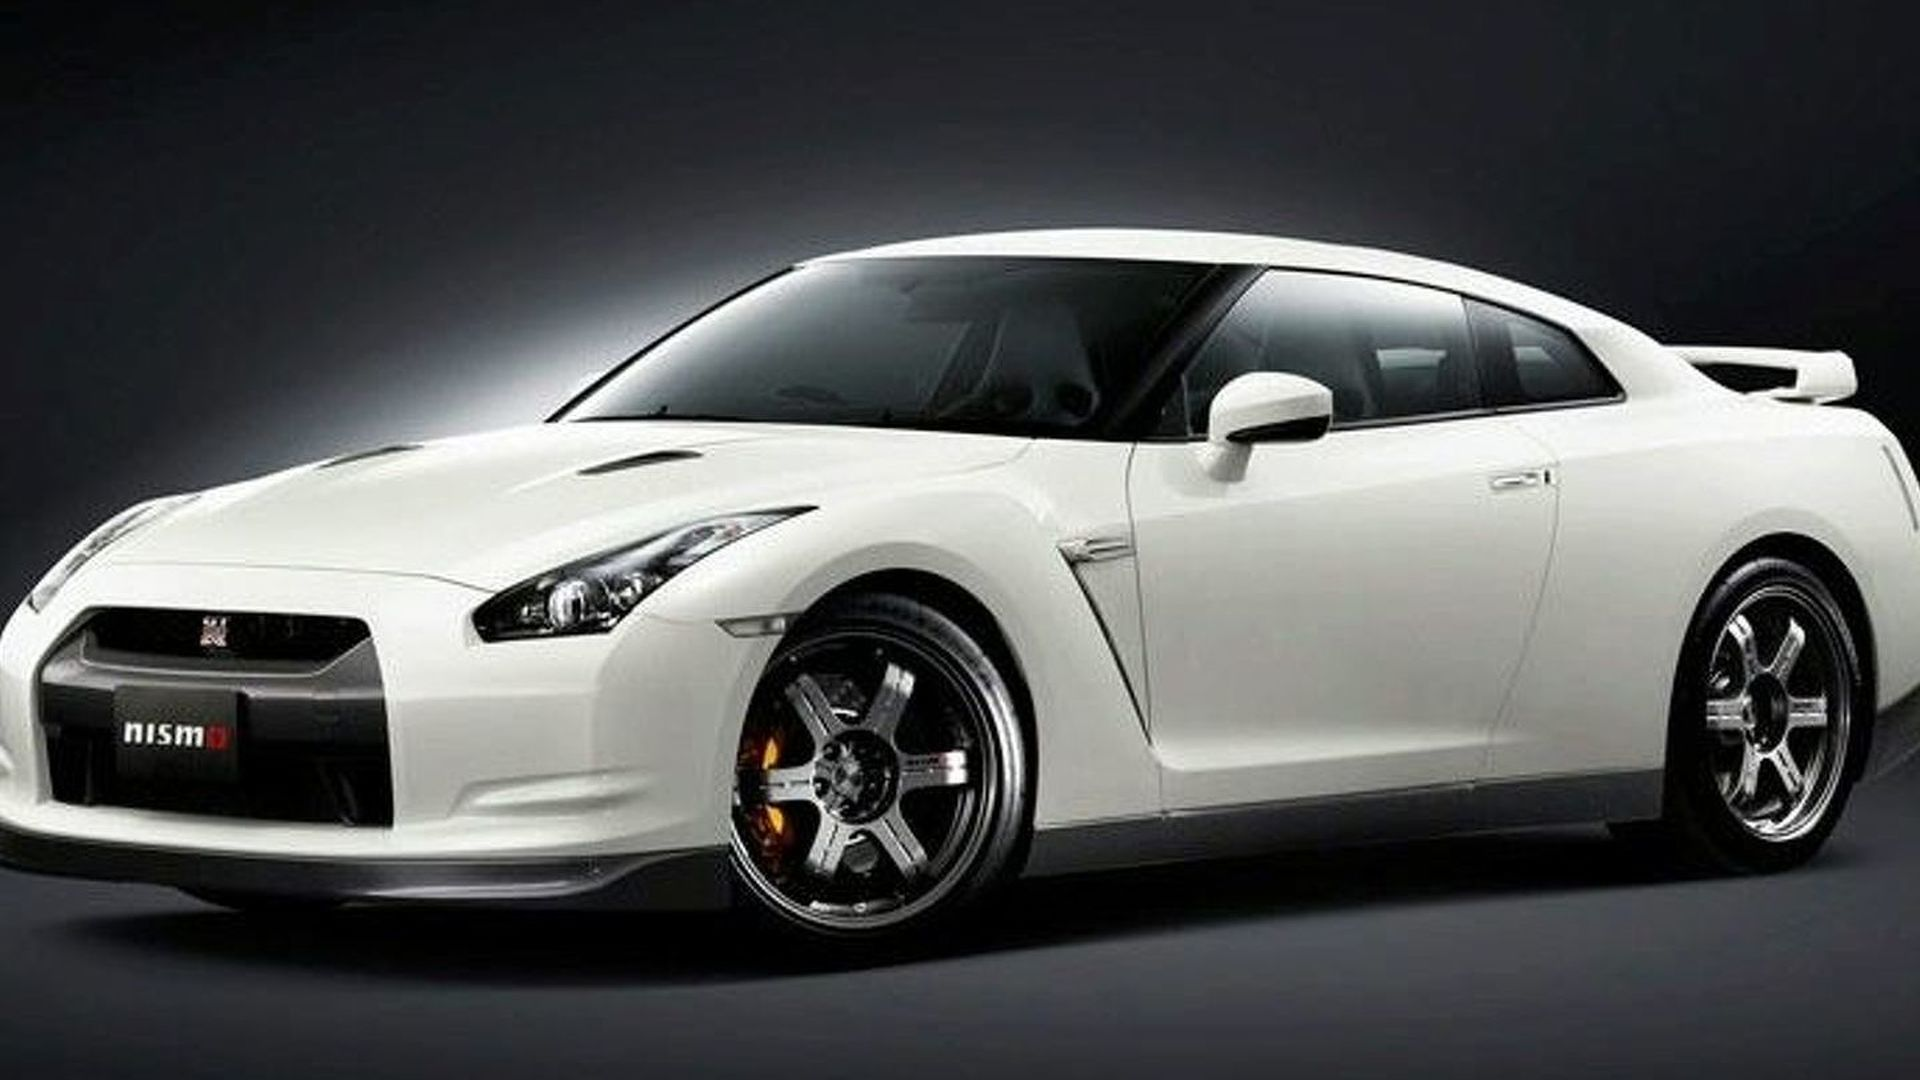 Nissan GT-R Club Sport Package from Nismo